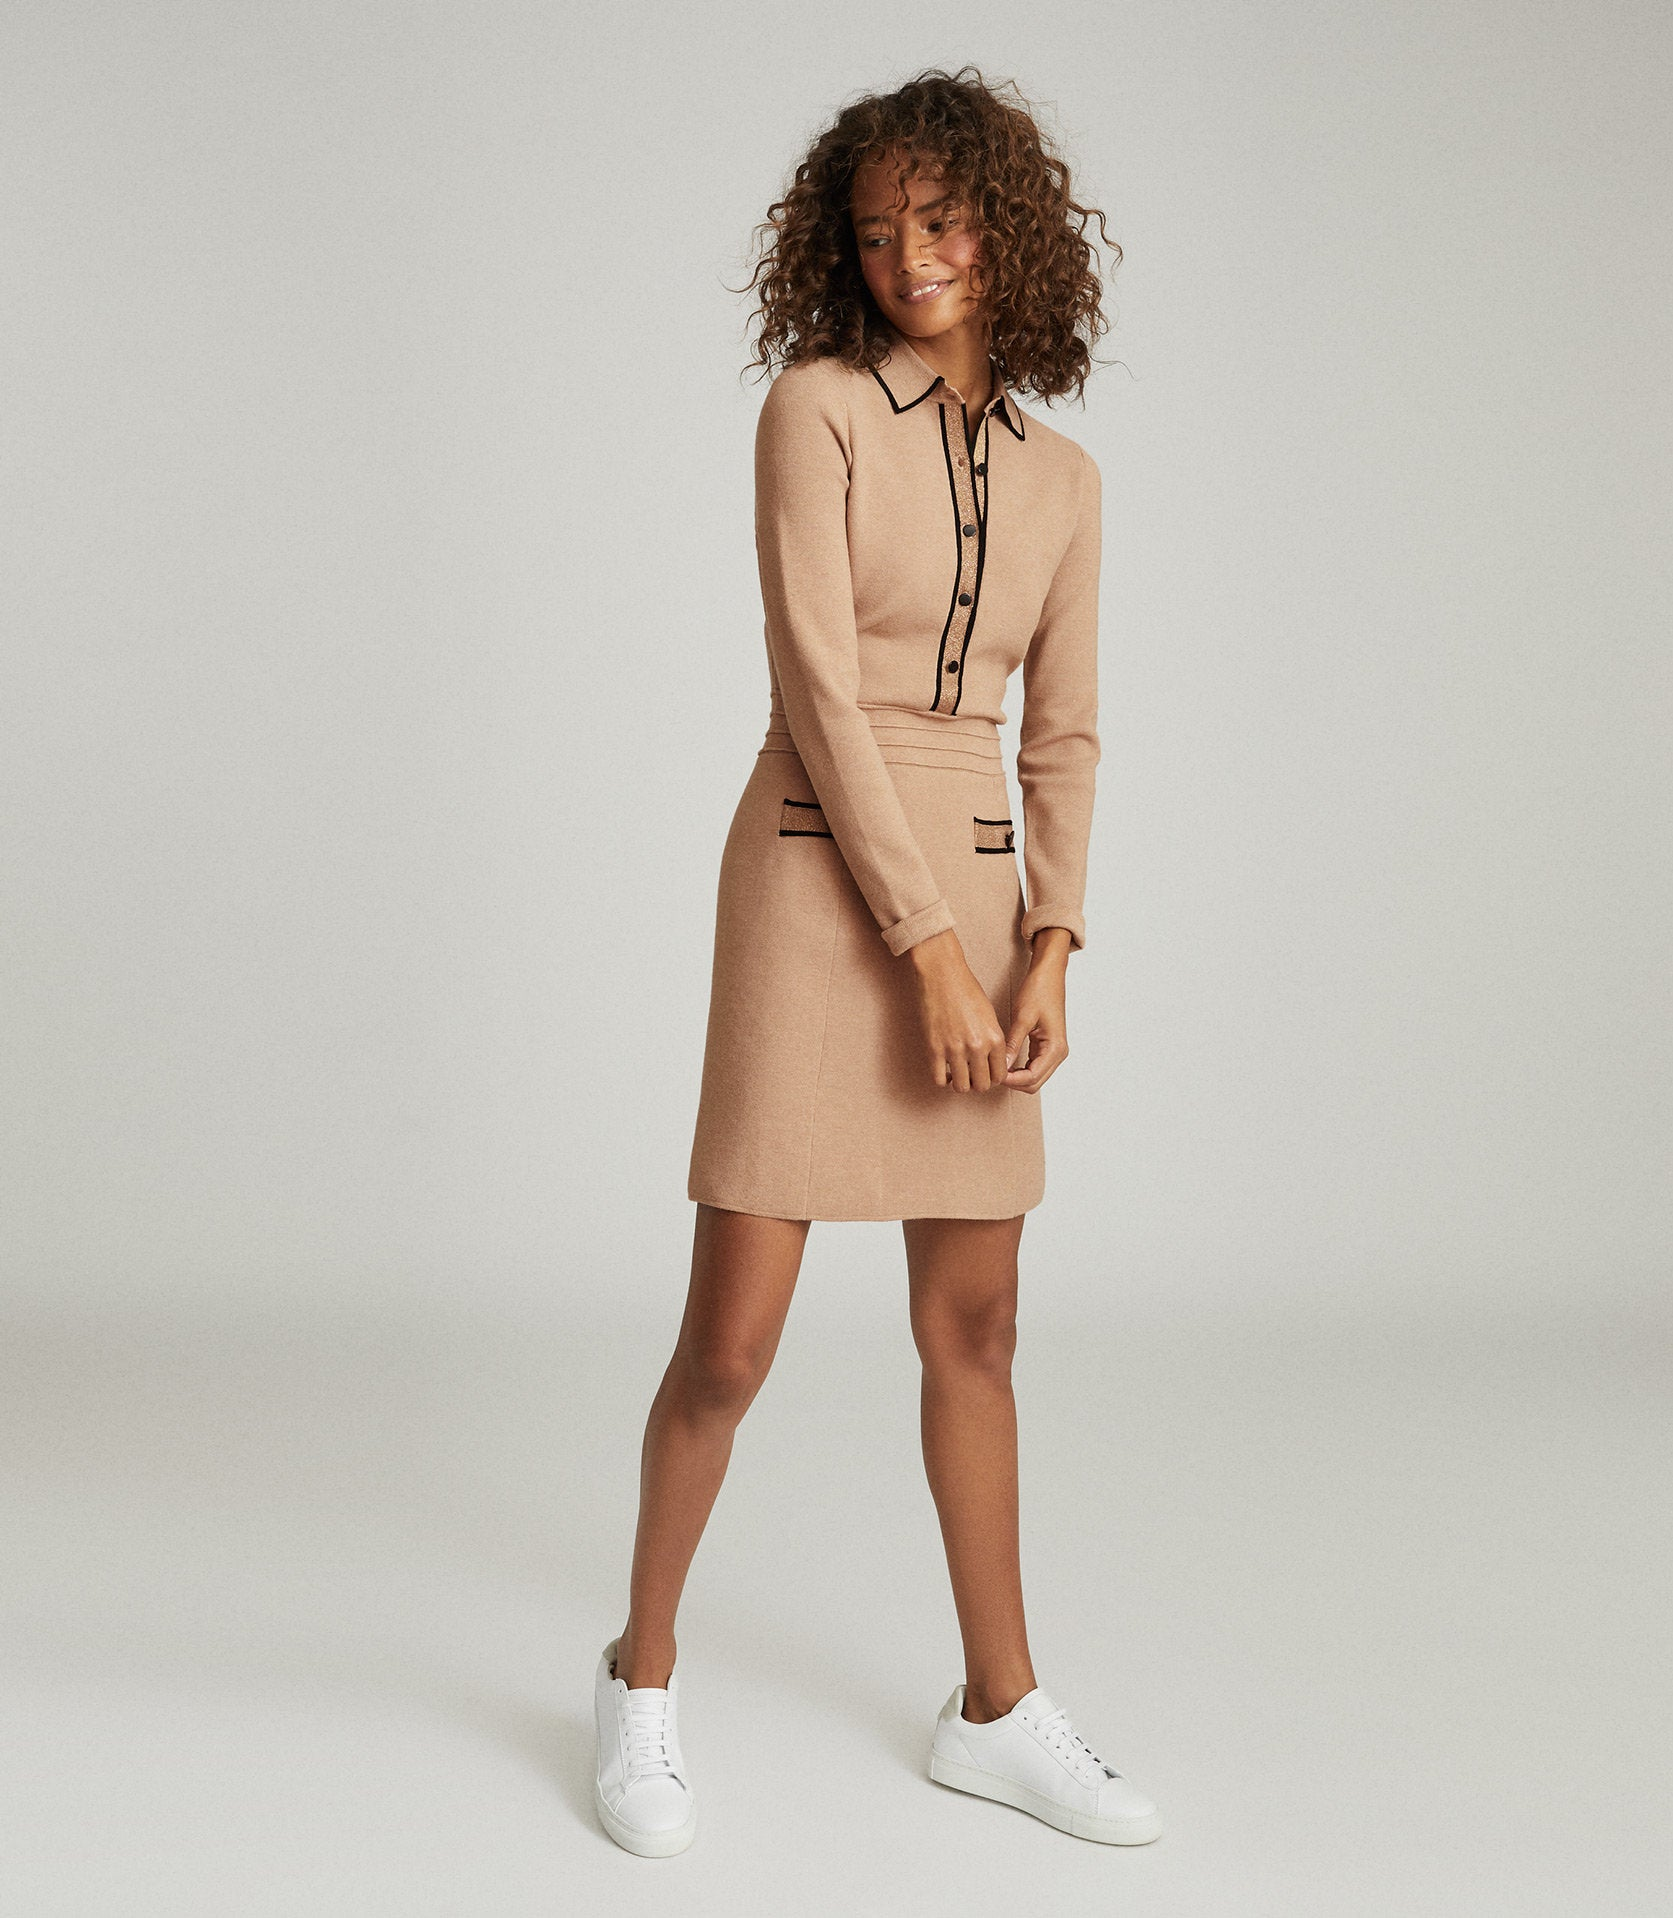 reiss knitted dress